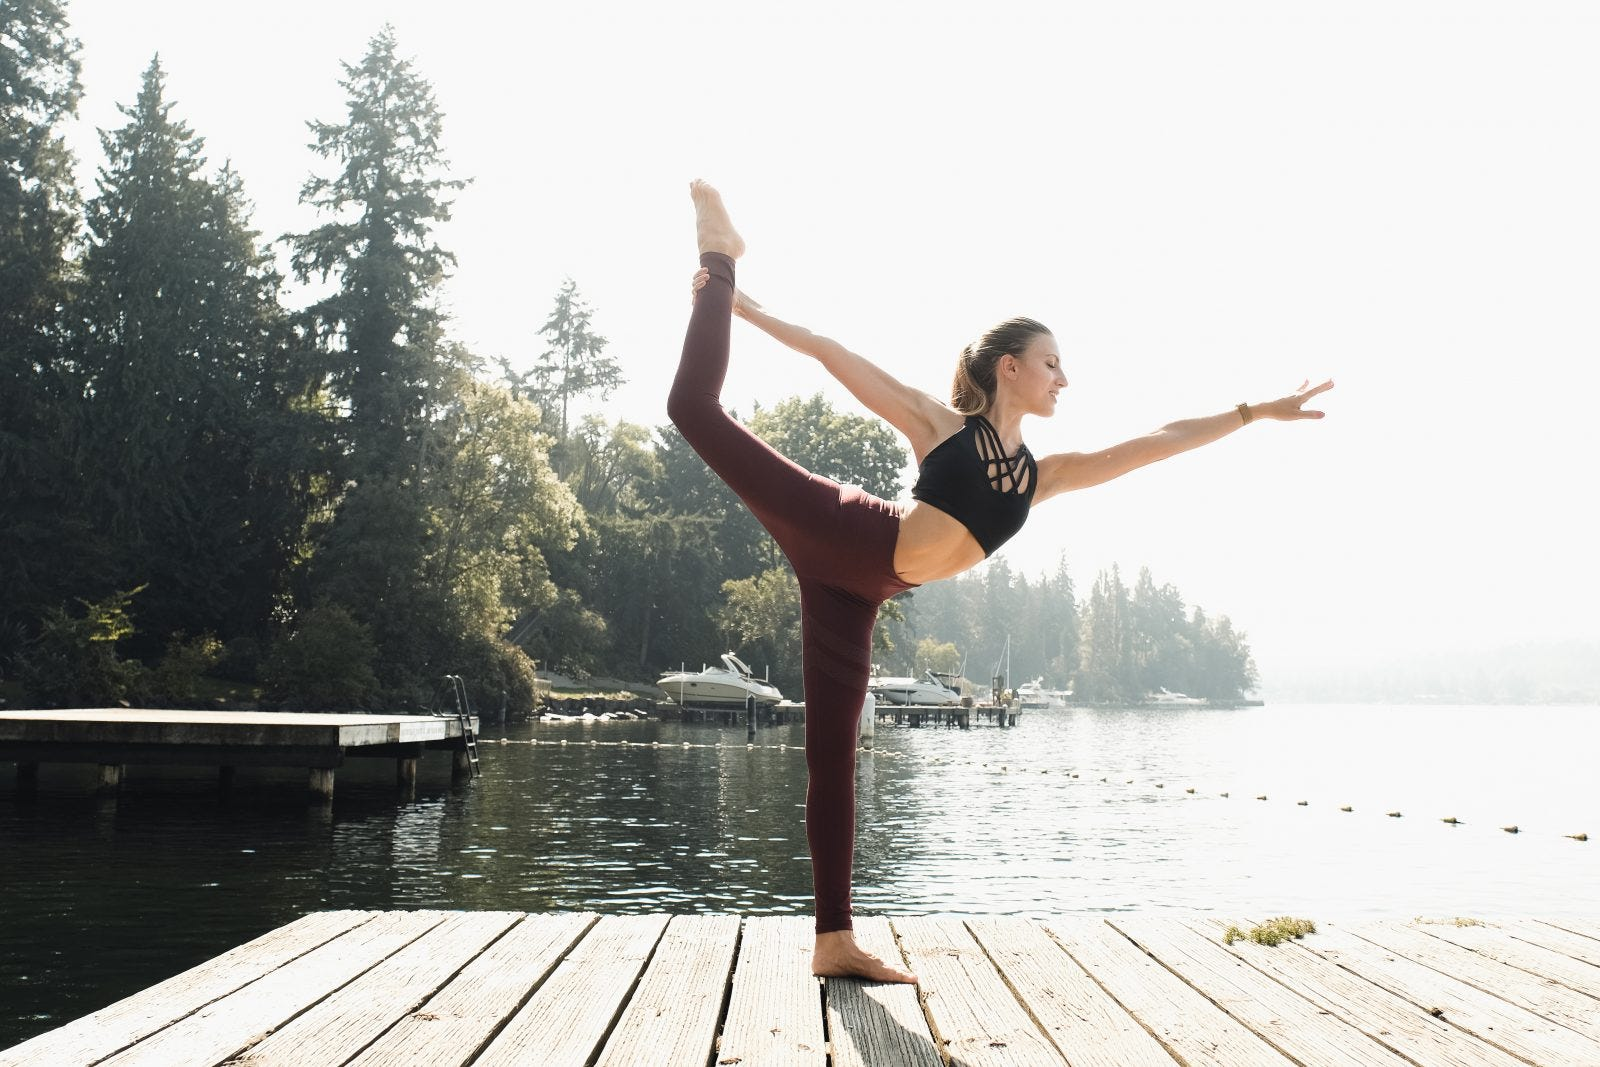 A woman in dancer's yoga pose on a deck in front of a lake.